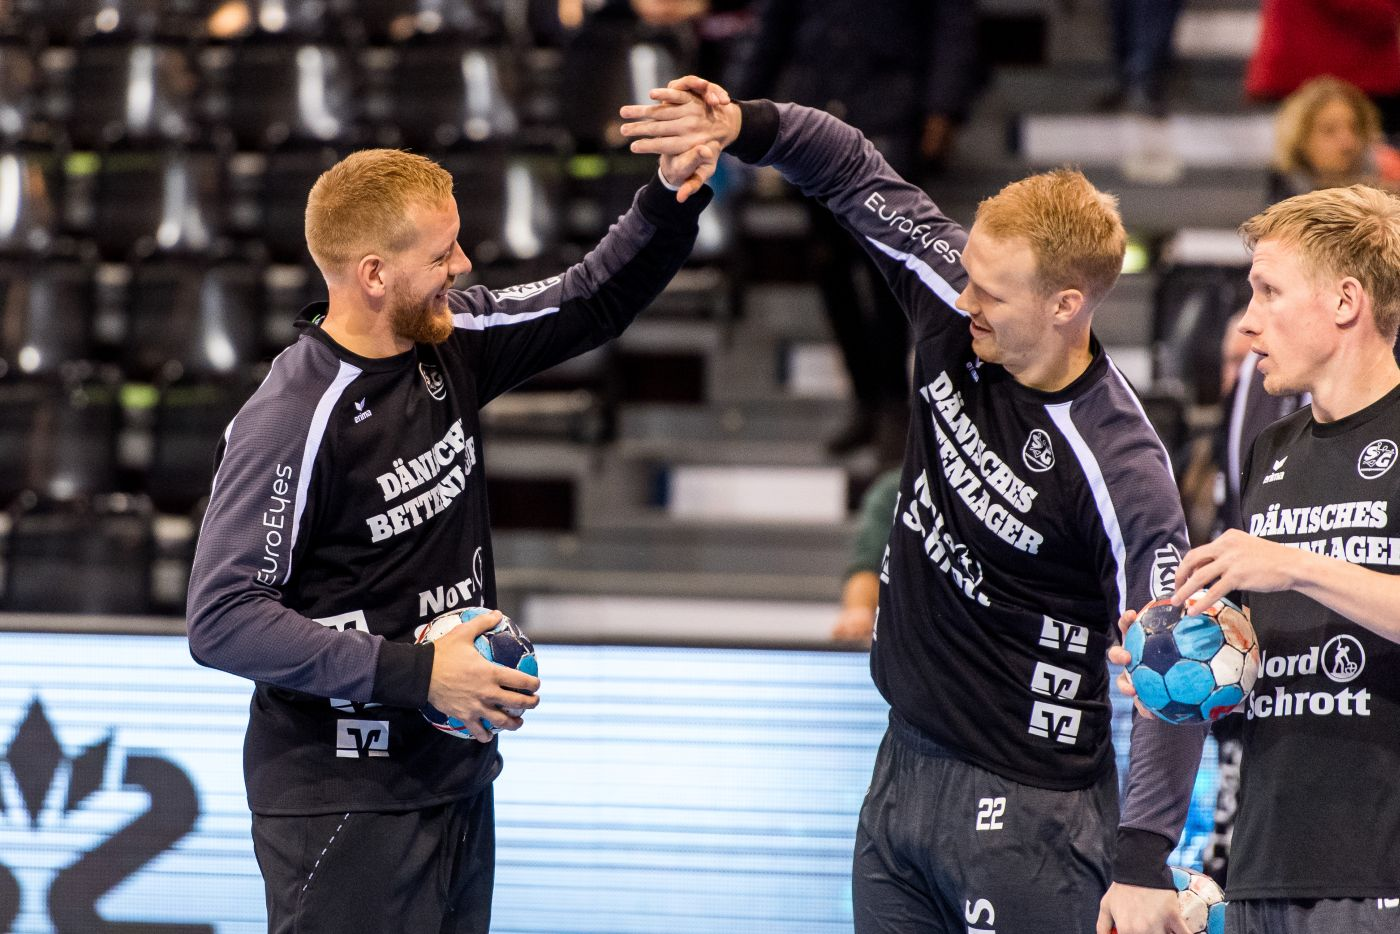 VELUX EHF Champions League 2018/19 > Gallery